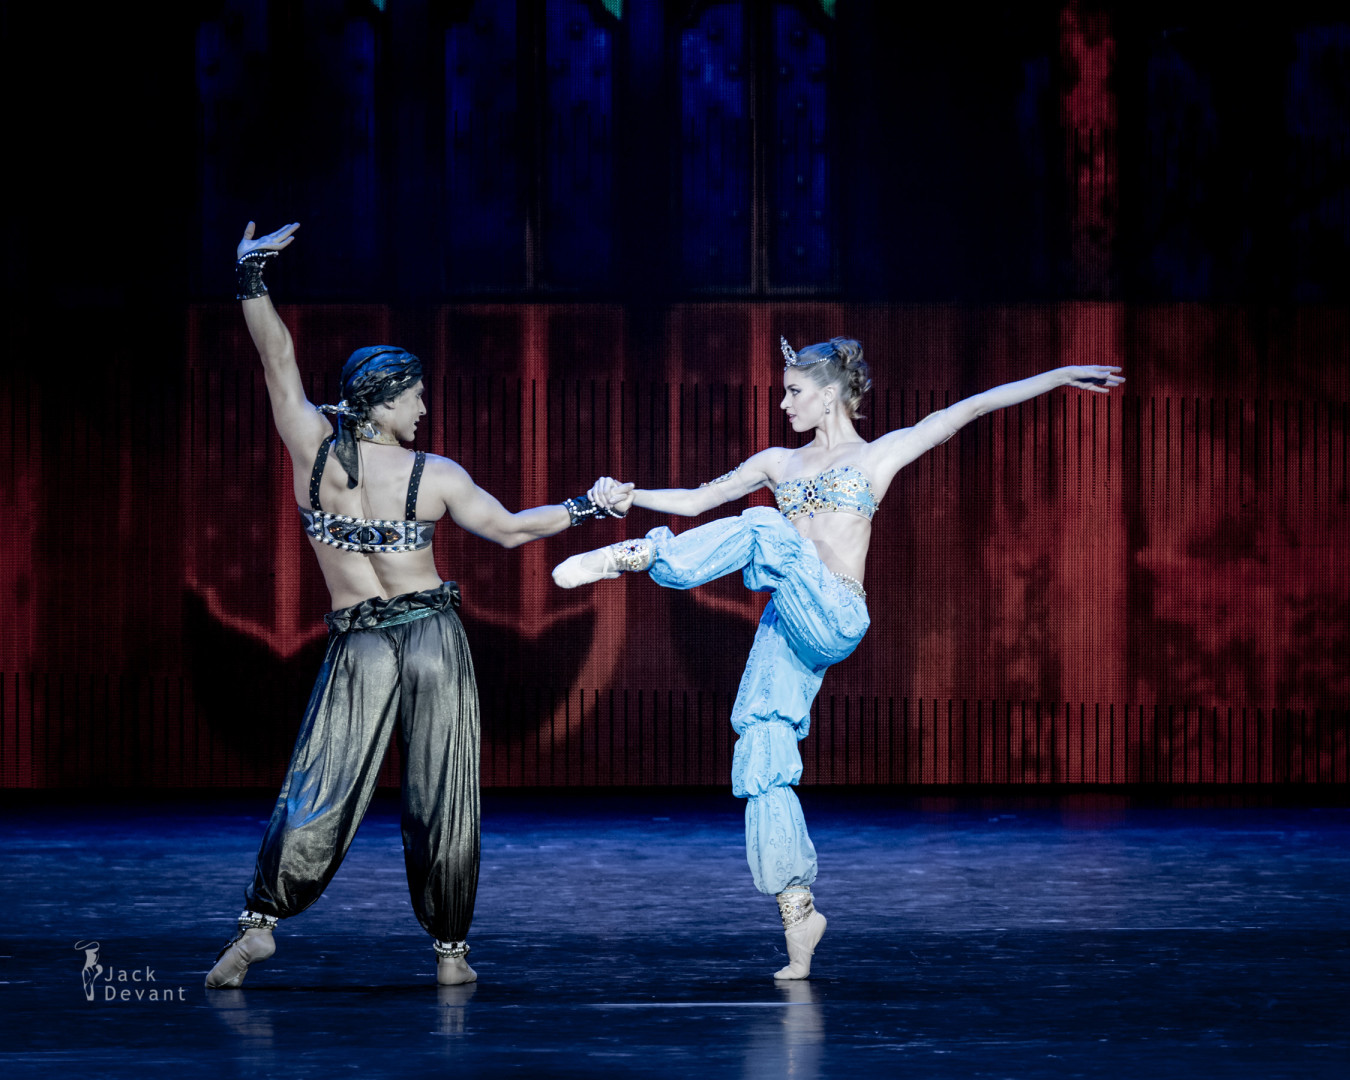 Maria Vinogradova and Ivan Vasiliev in Scheherazade